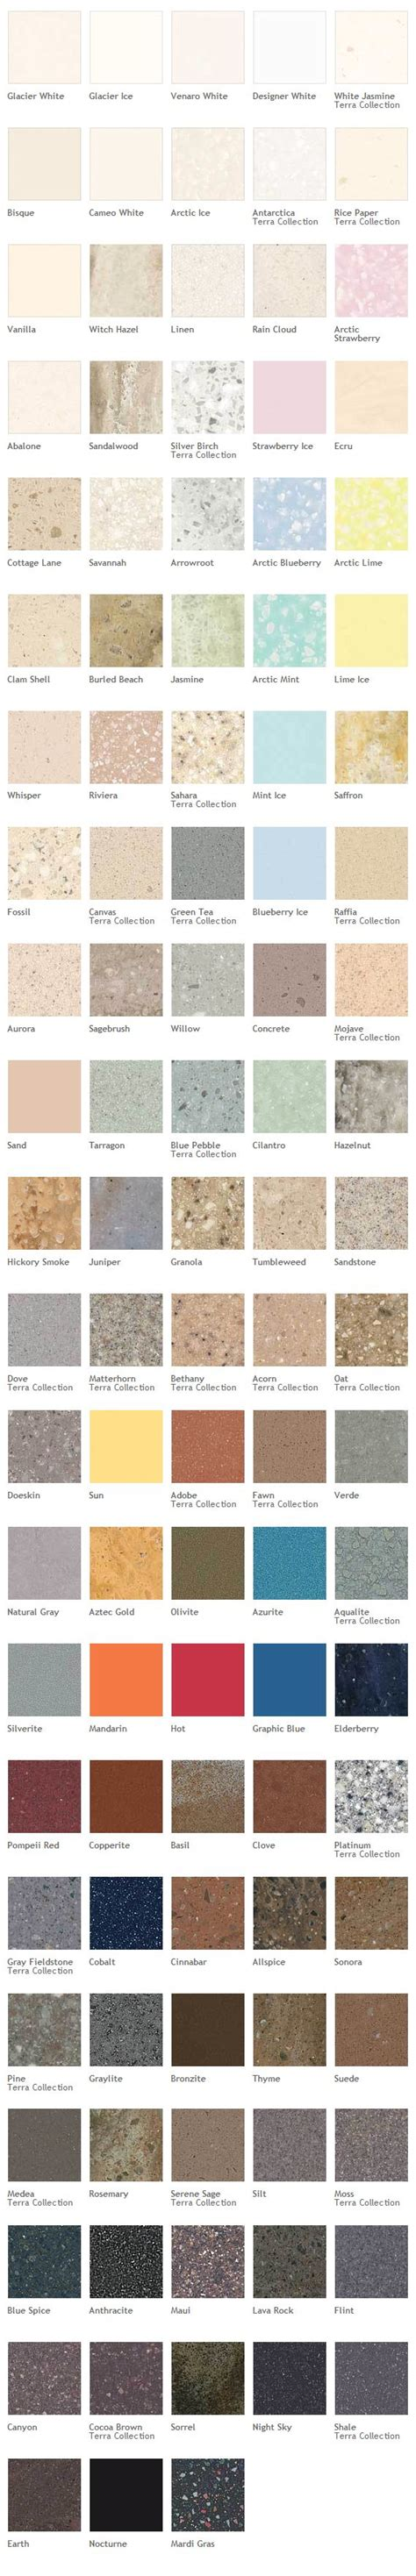 corian countertop colors corian countertop colors 28 images best 25 corian